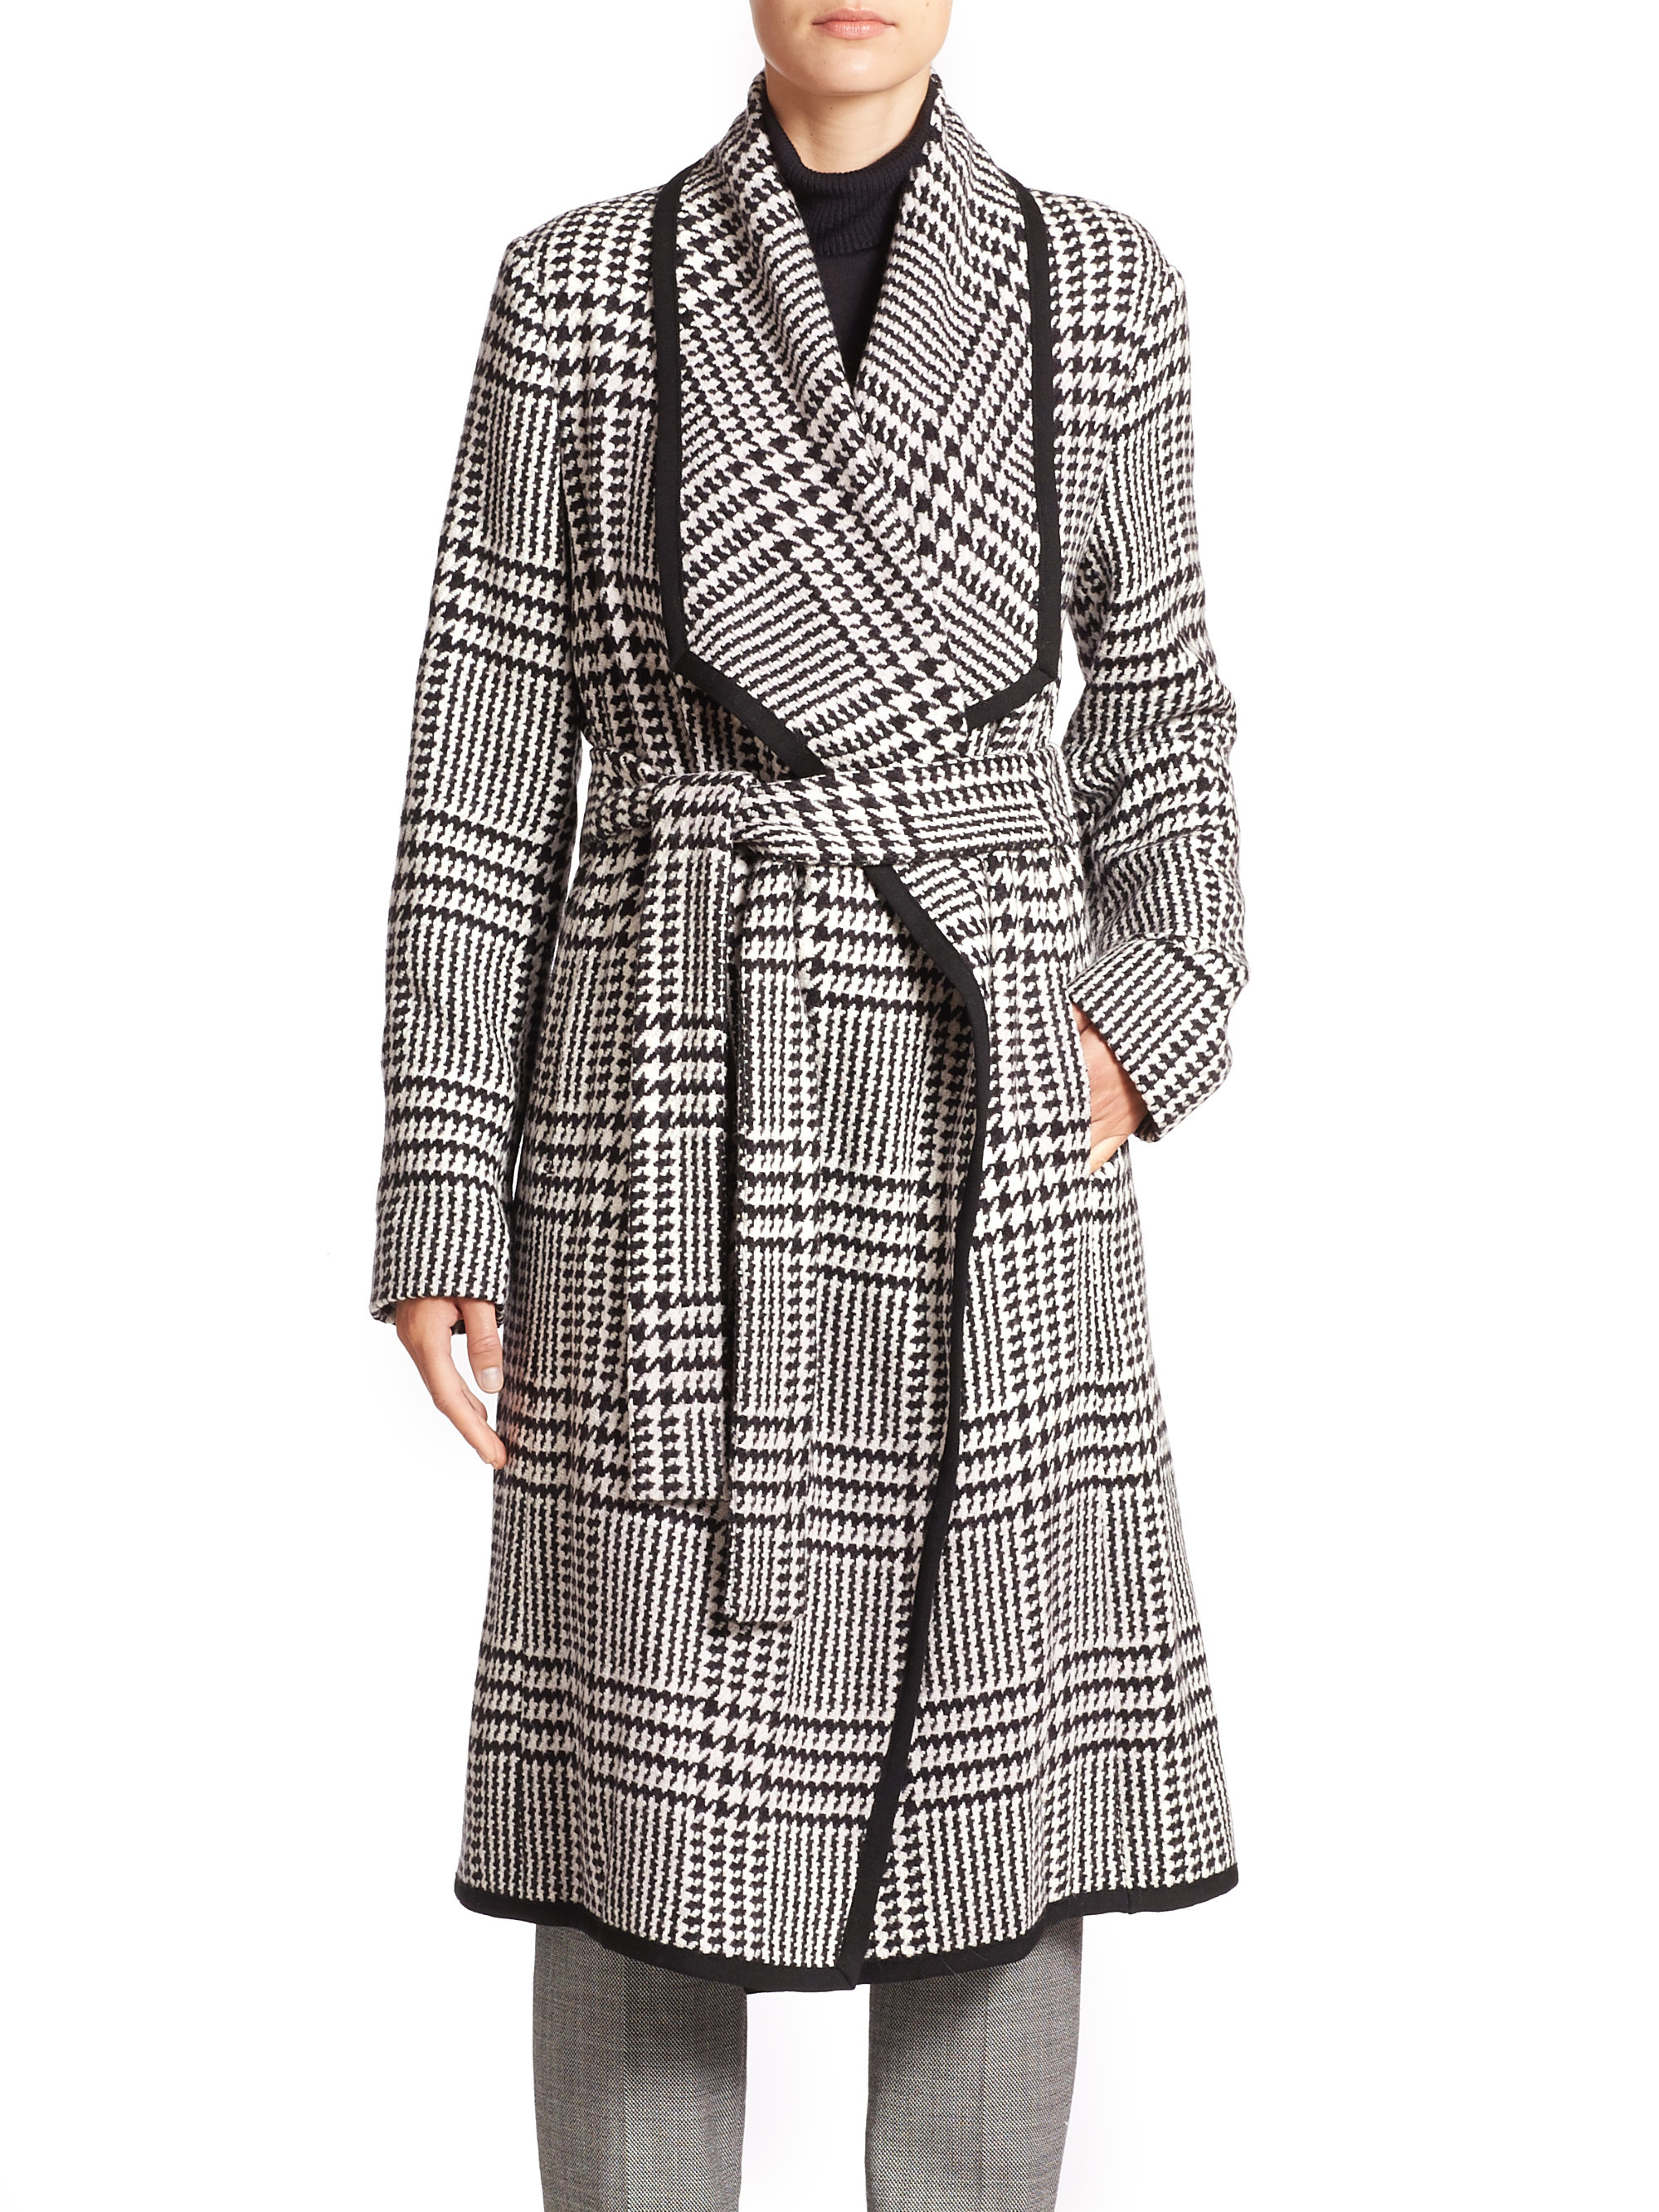 Escada Houndstooth Belted Wool Coat in Gray | Lyst